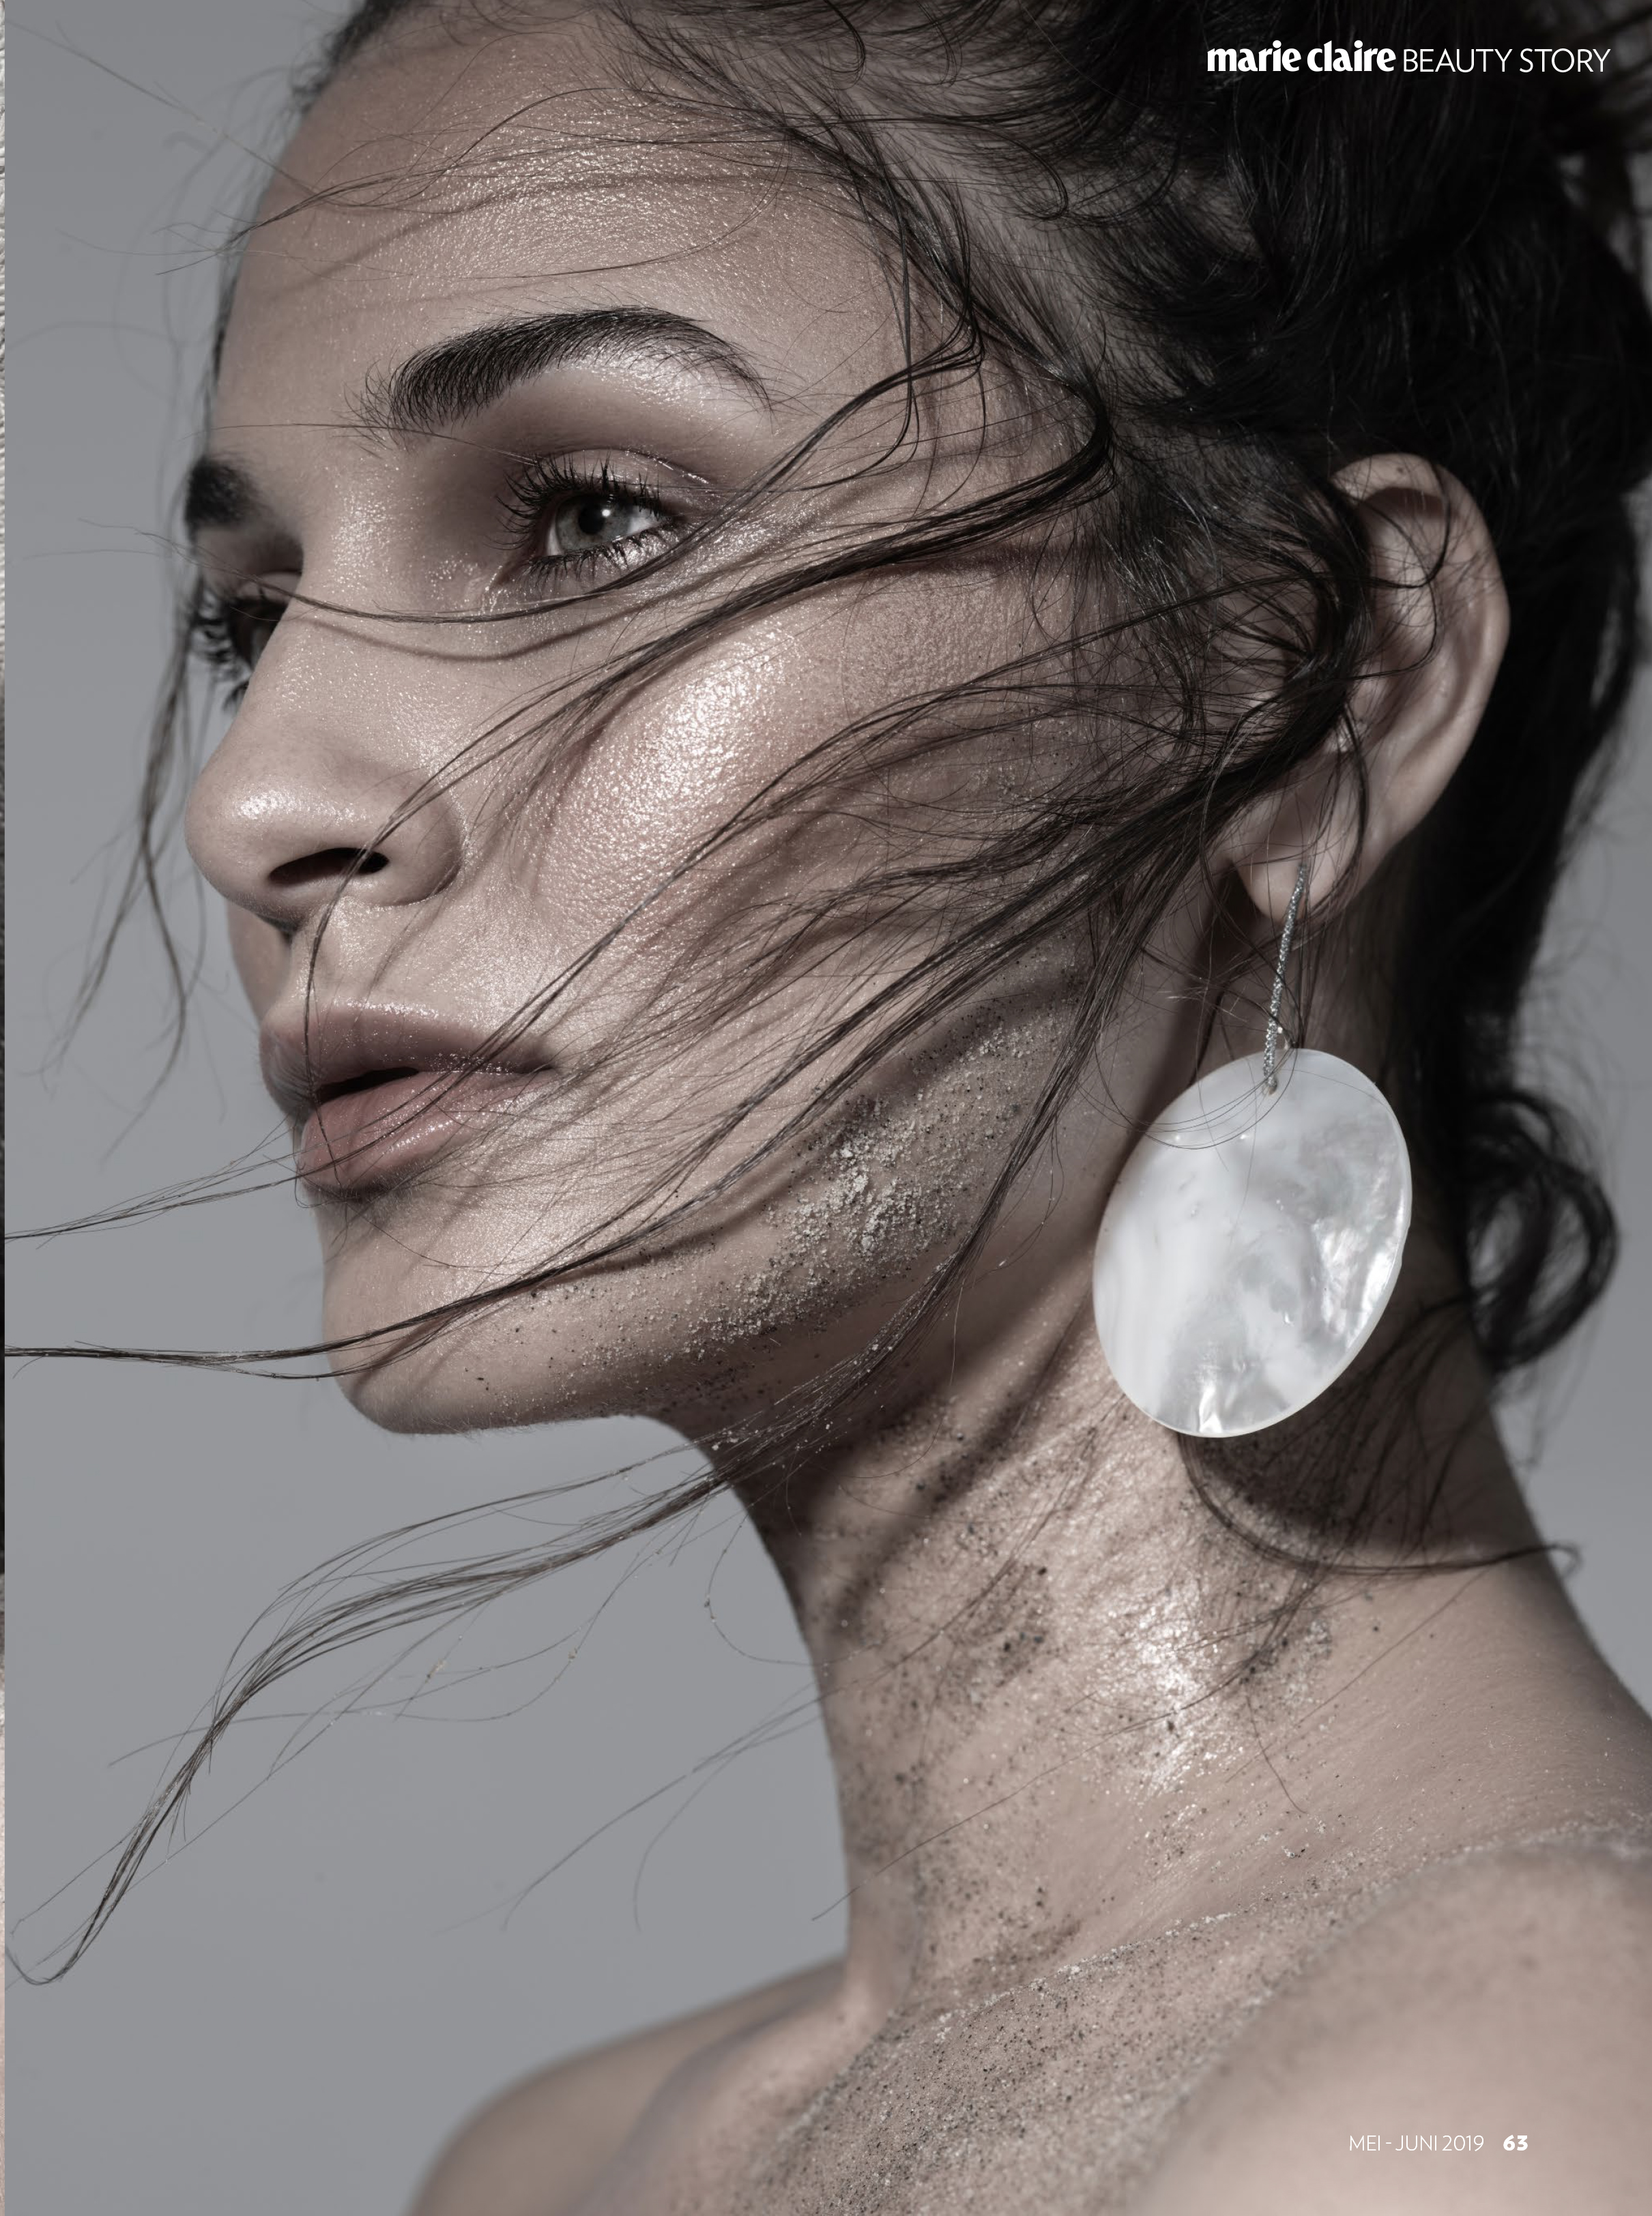 MARIE CLAIRE INDONESIA, MAY-JUNE ISSUE. PHOTOGRAPHY BY MATTHEW SCHAEFFER, STYLED BY OSCAR MONTES DE OCA.  SOUTH SEA MOTHER OF PEARL EARRINGS  BY SIMON ALCANTARA